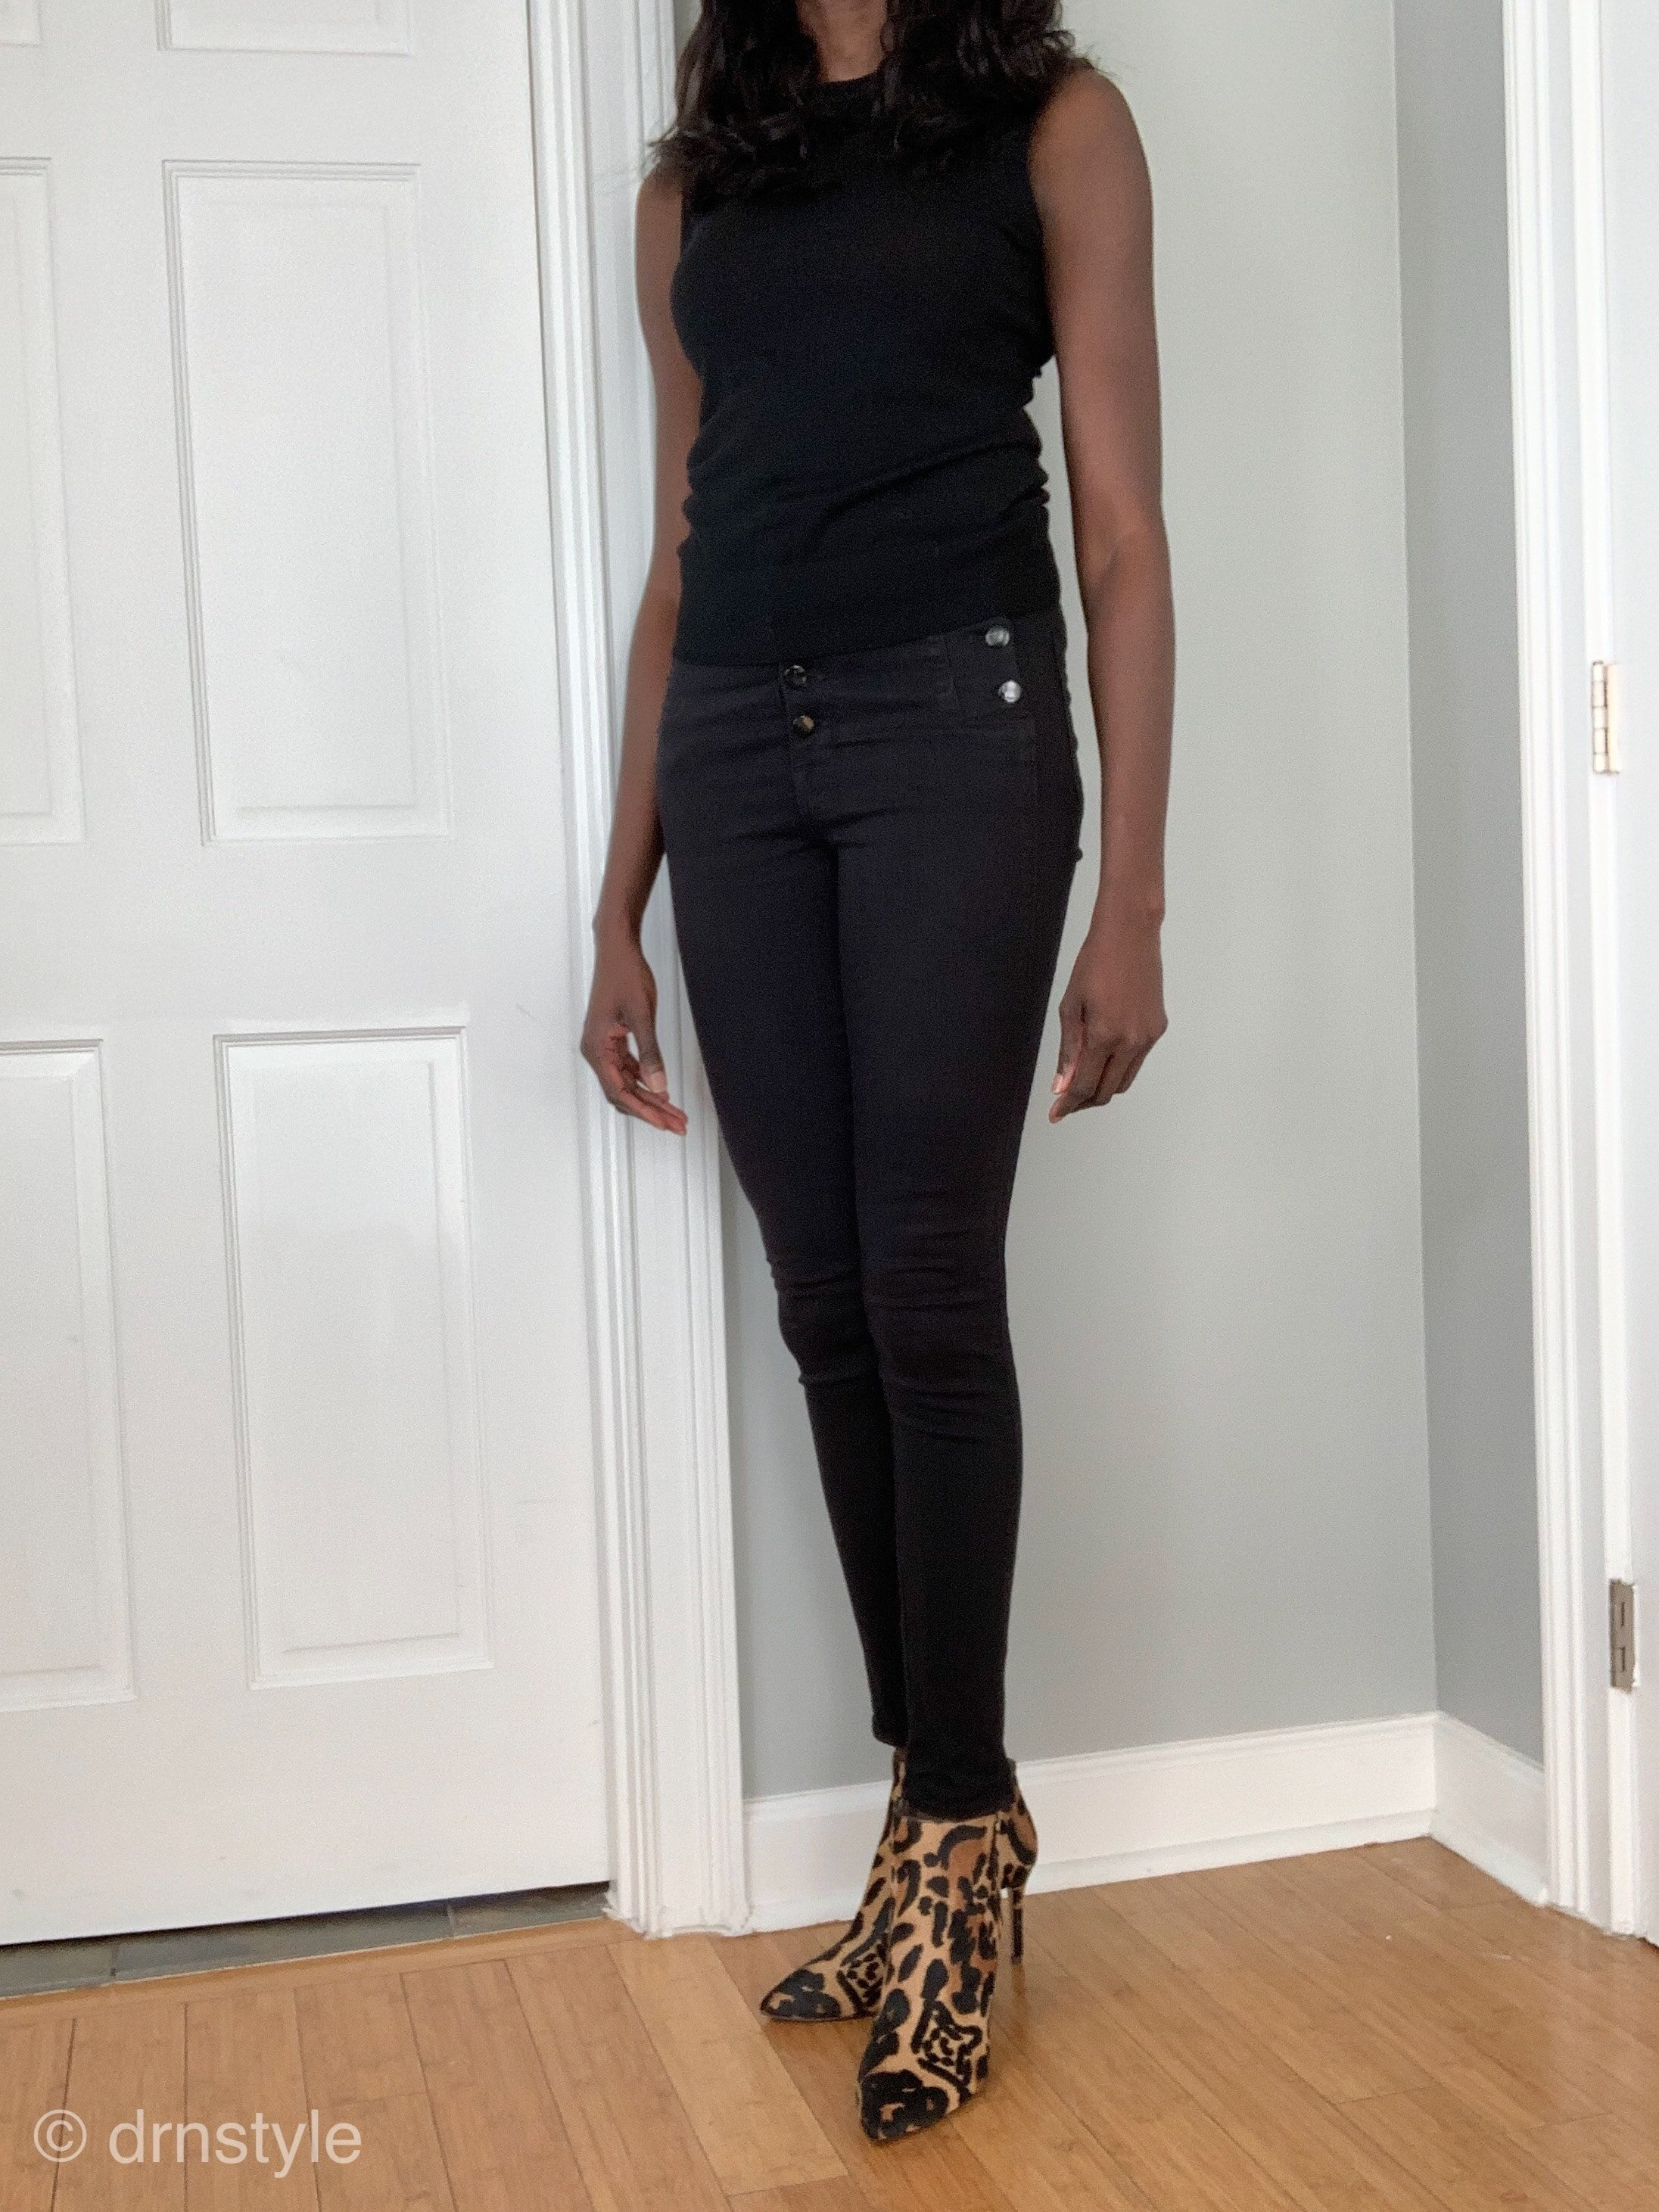 A black sleeveless top, black jeans, and leopard print boots.